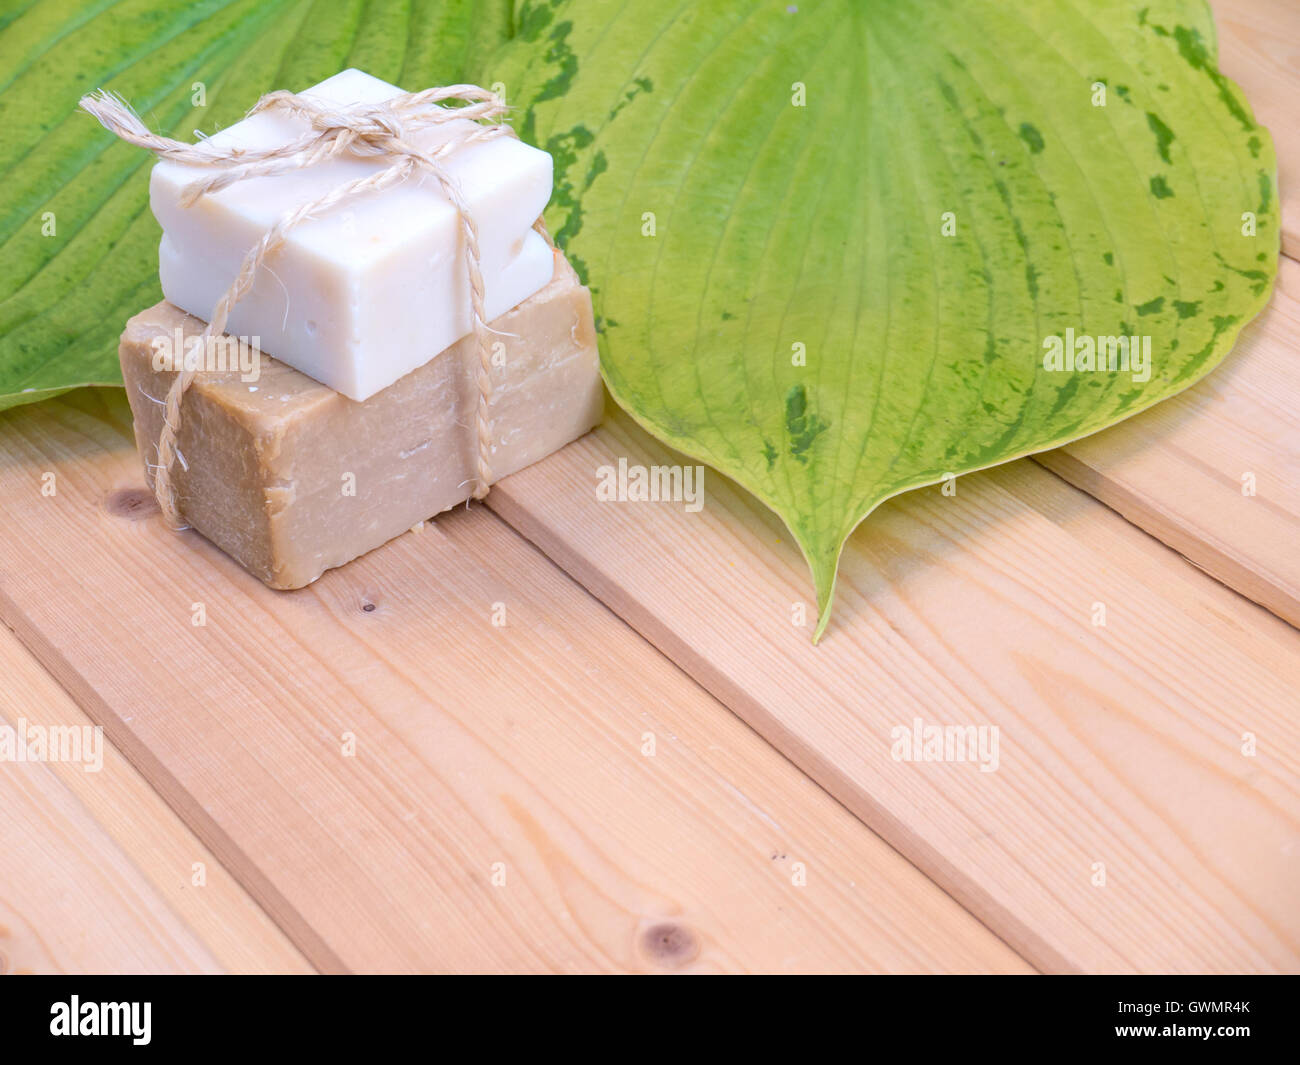 Homemade organic soap tied with jute rope and two green hosta leaves with veins on the wooden planks - Stock Image